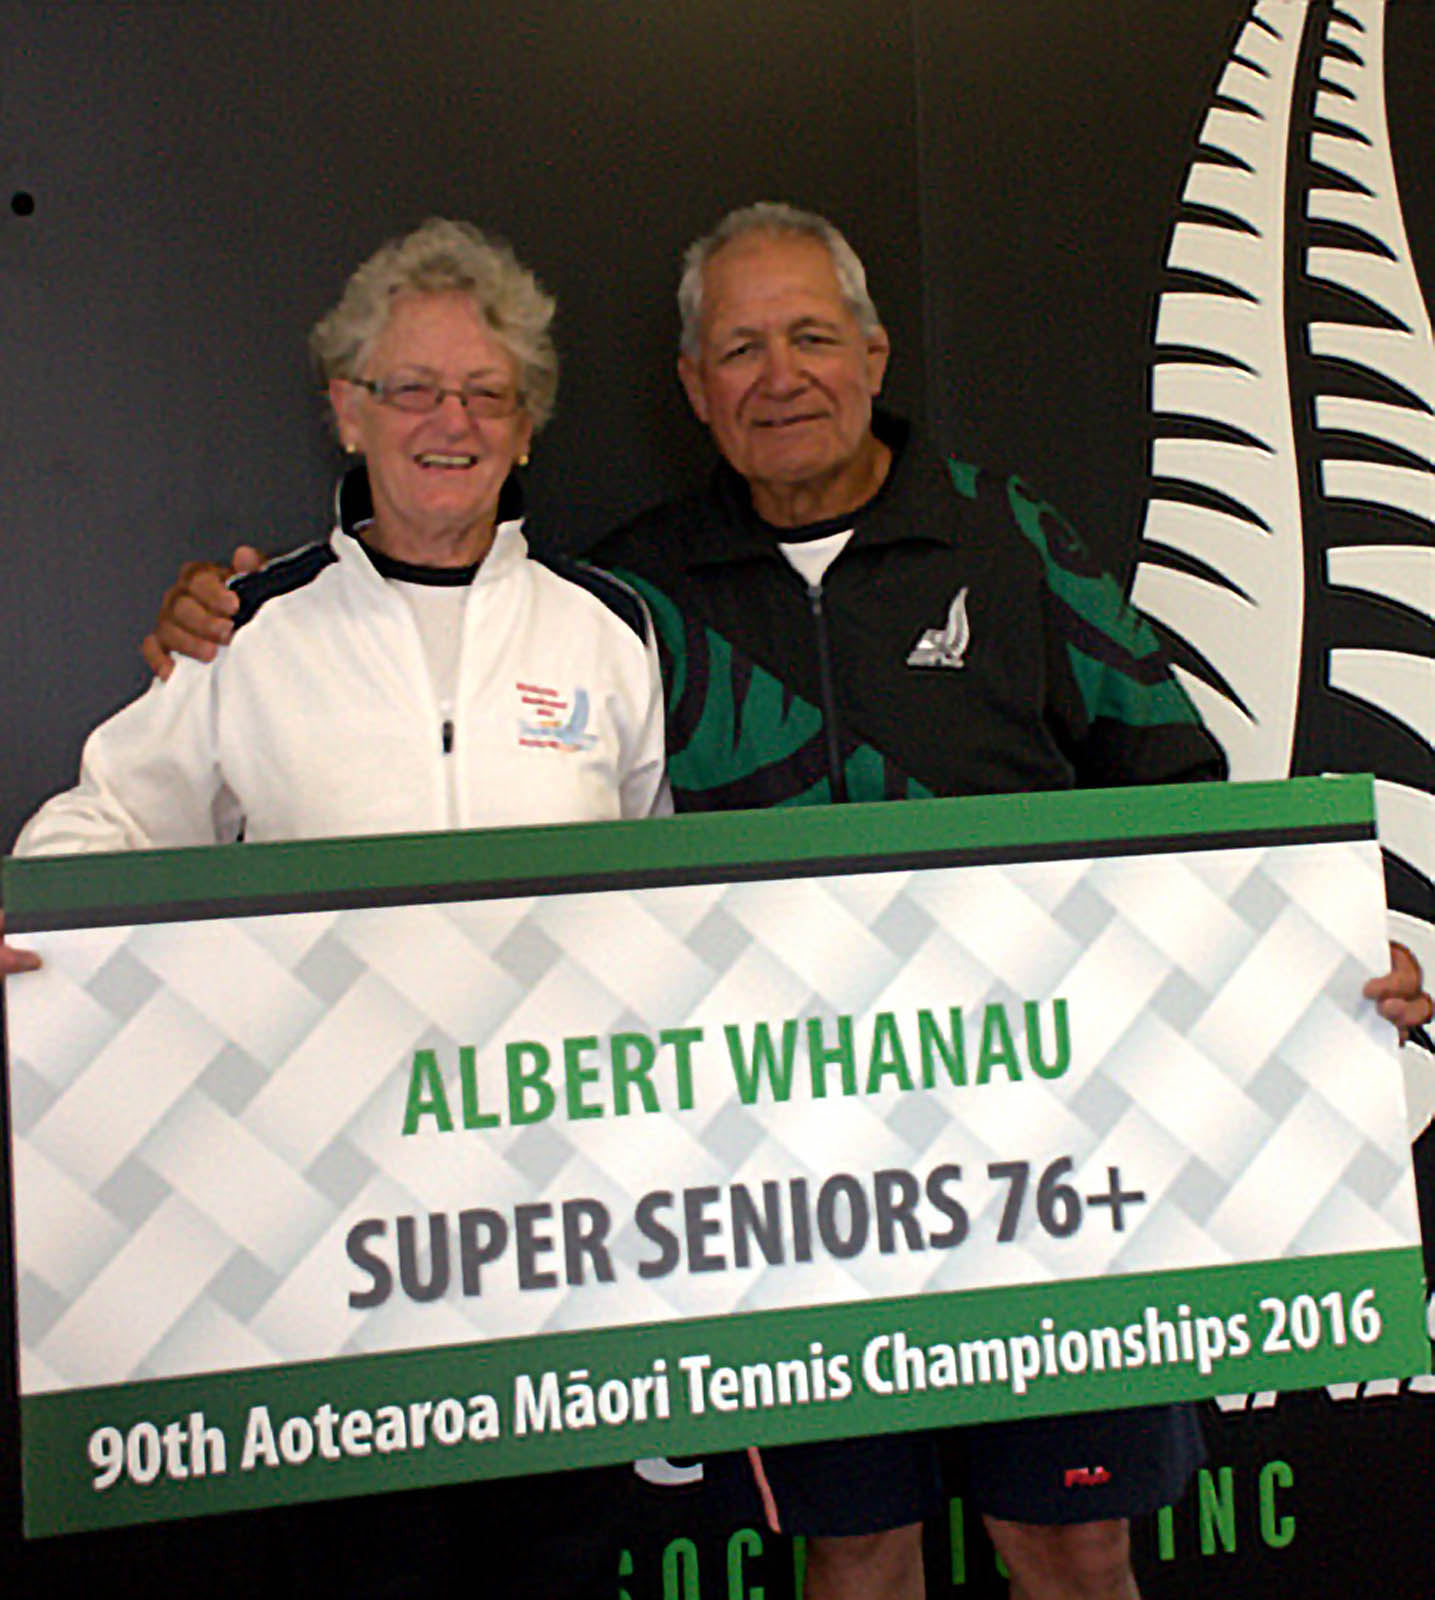 Super Seniors 76+ winners